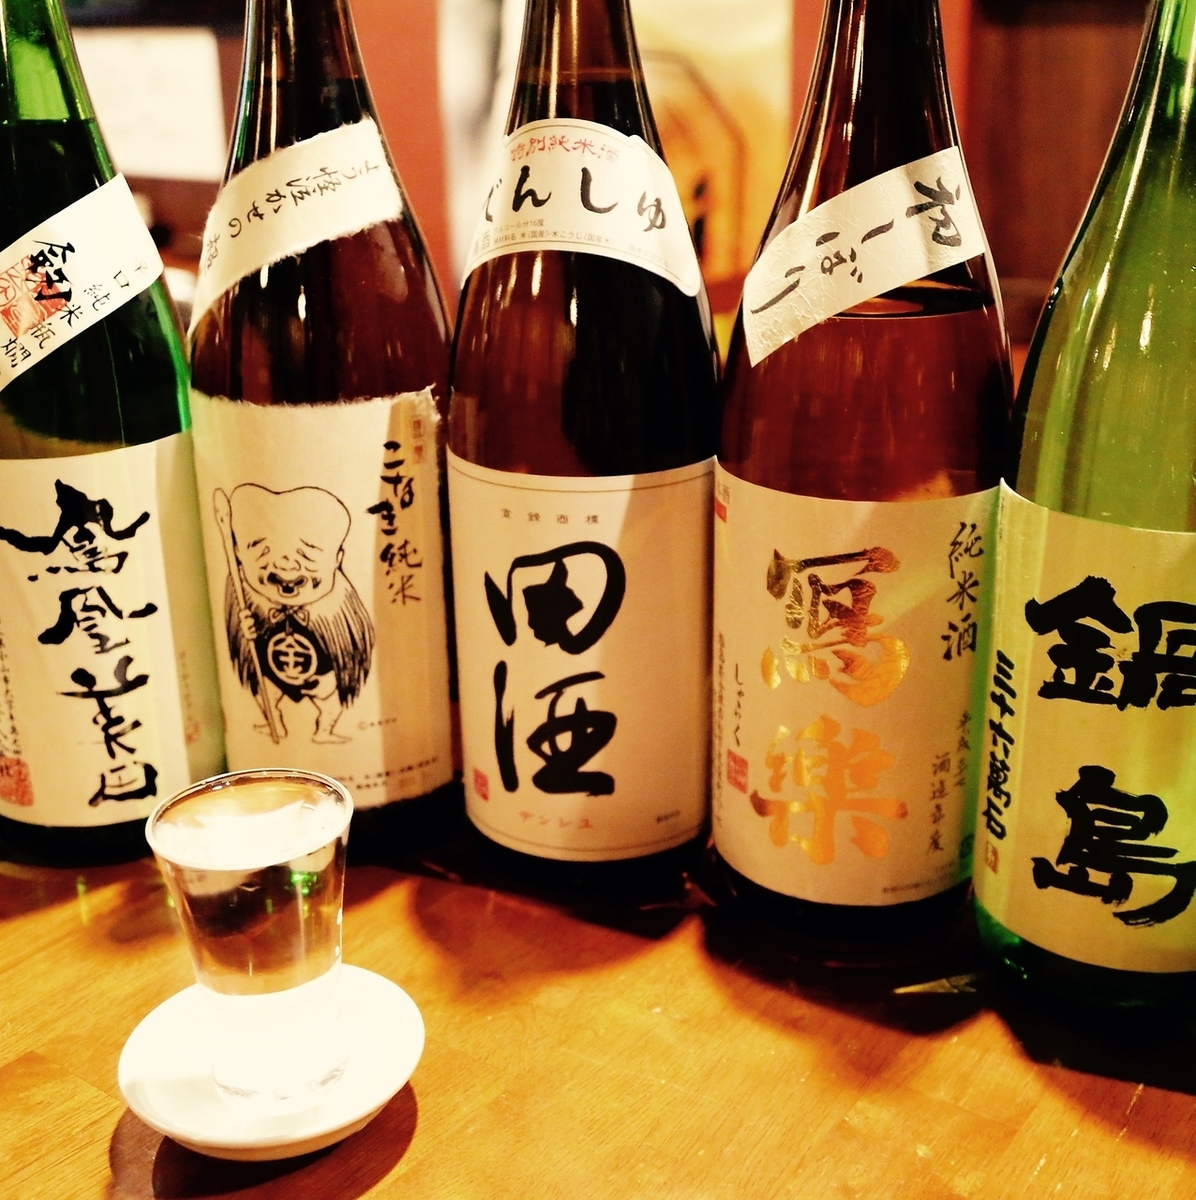 Sip delicious sake in the glass !!